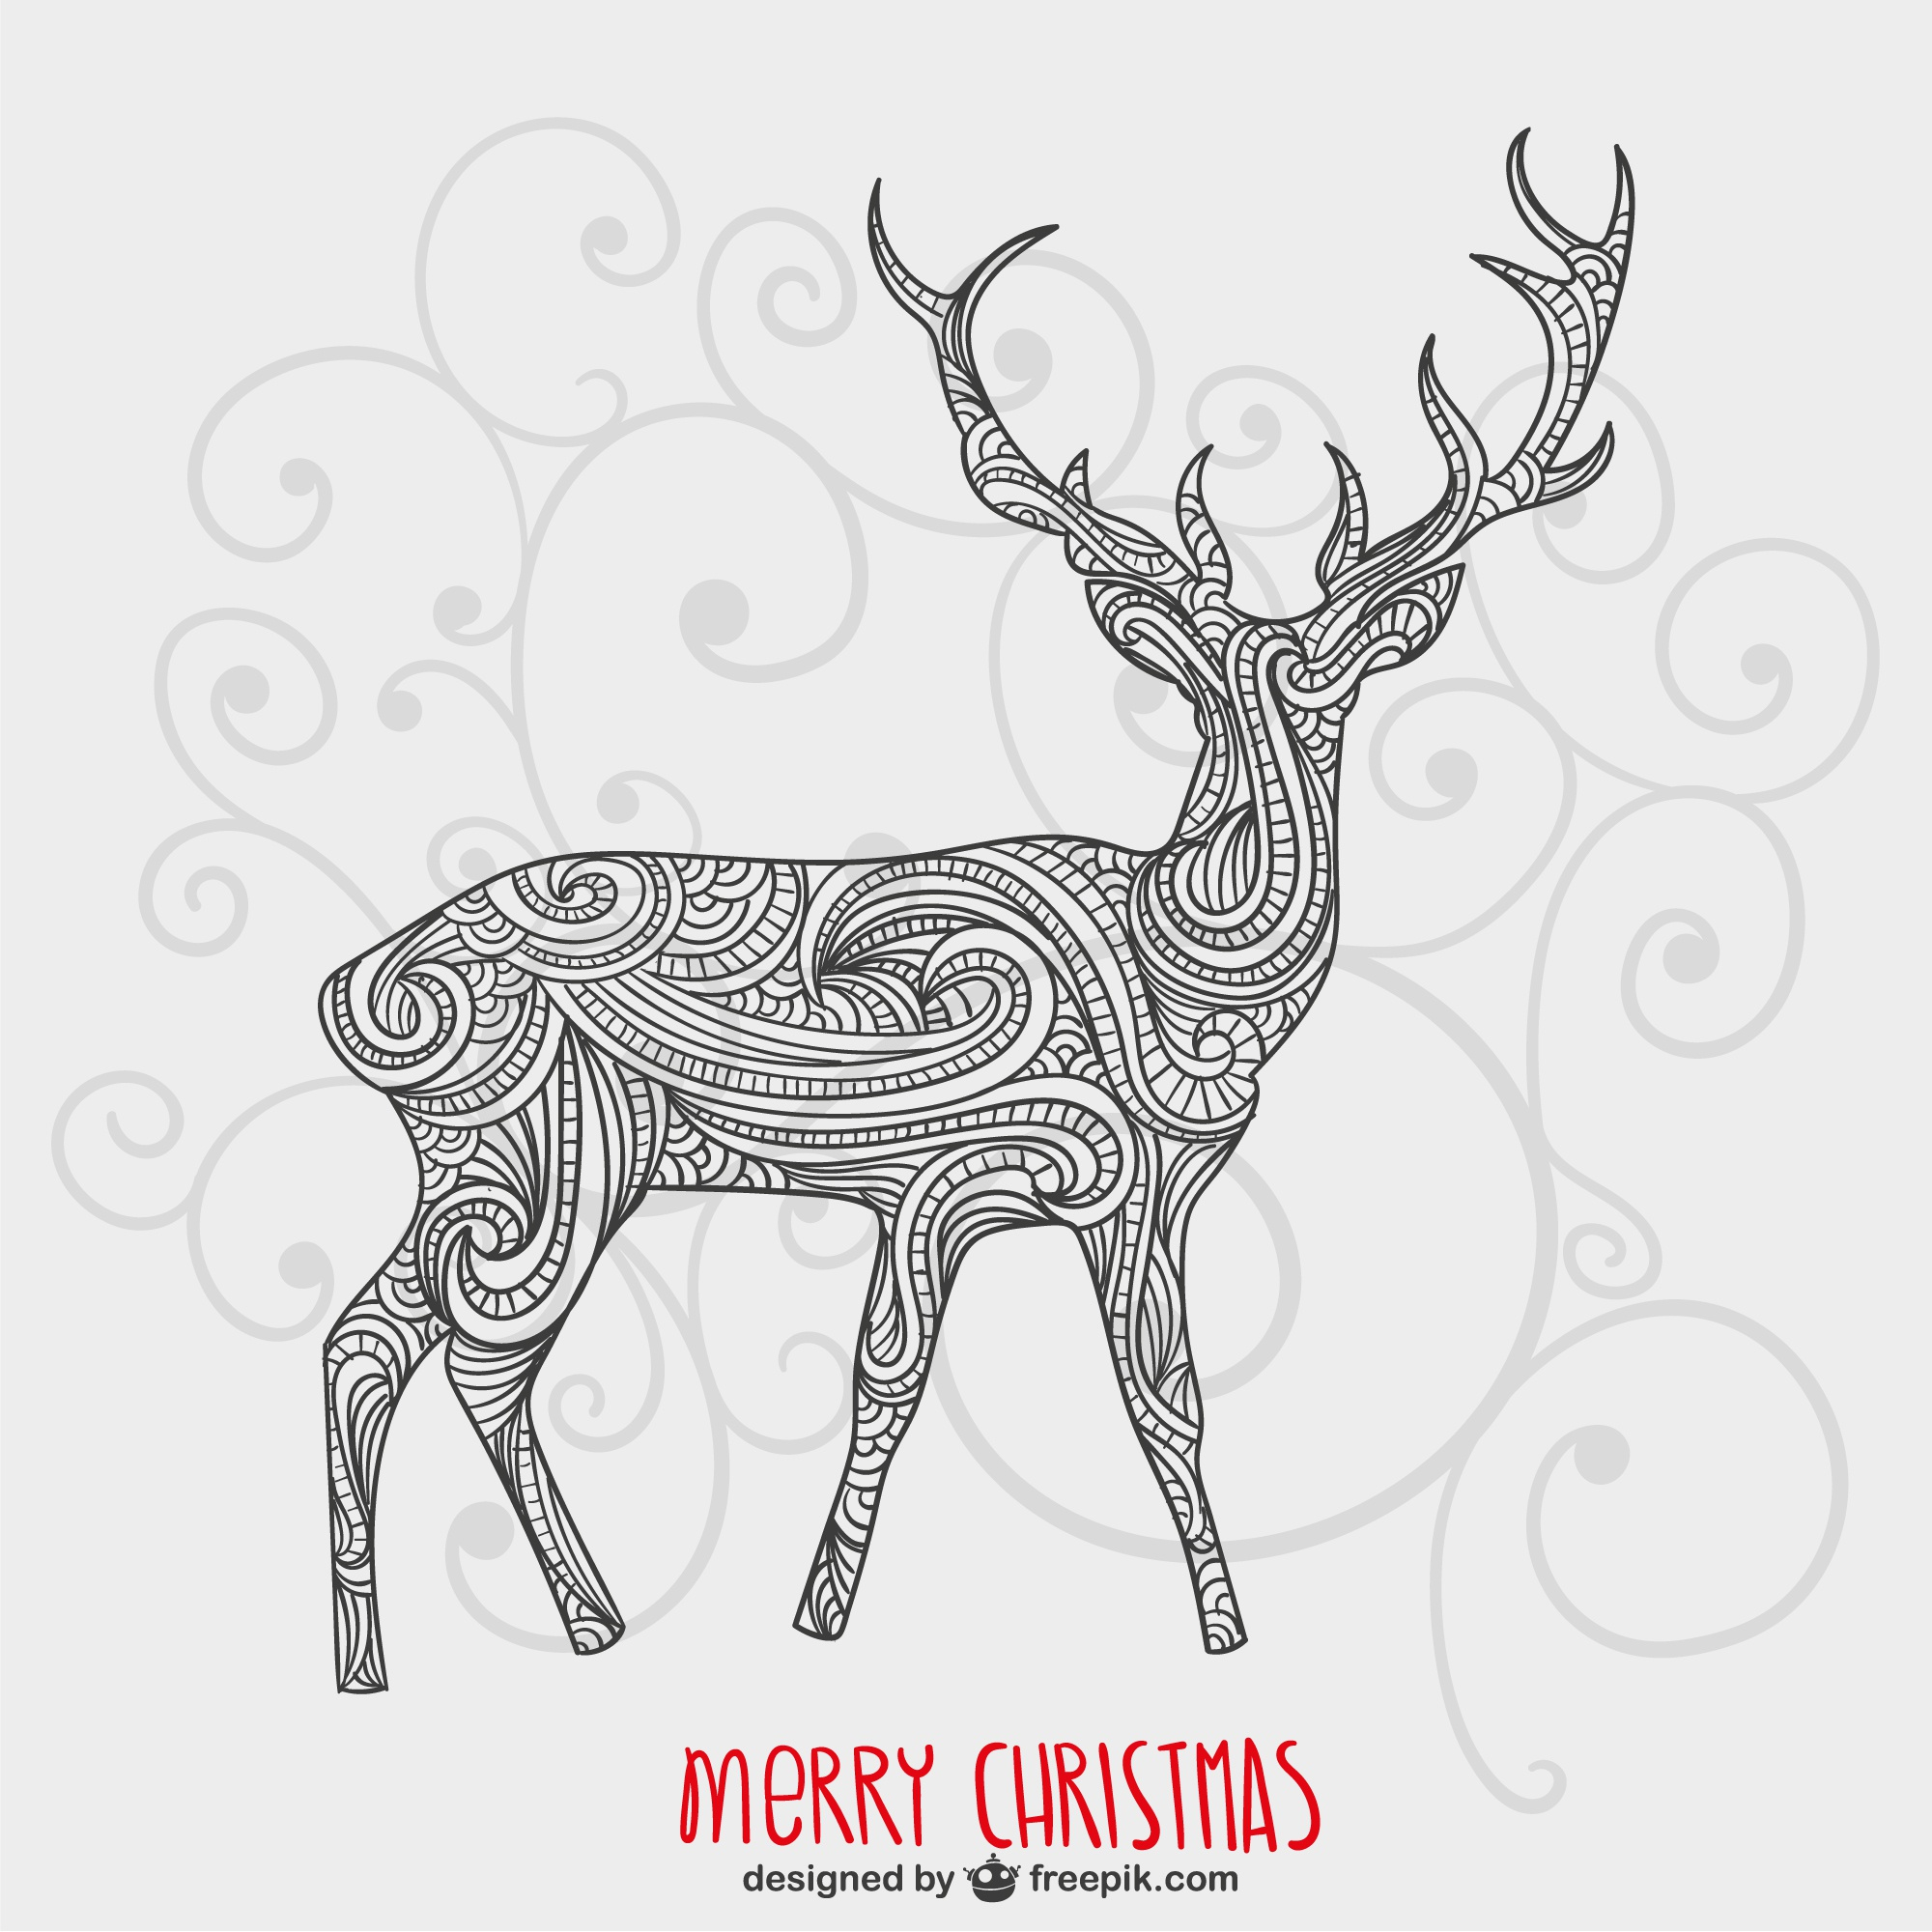 Christmas card with artistic reindeer